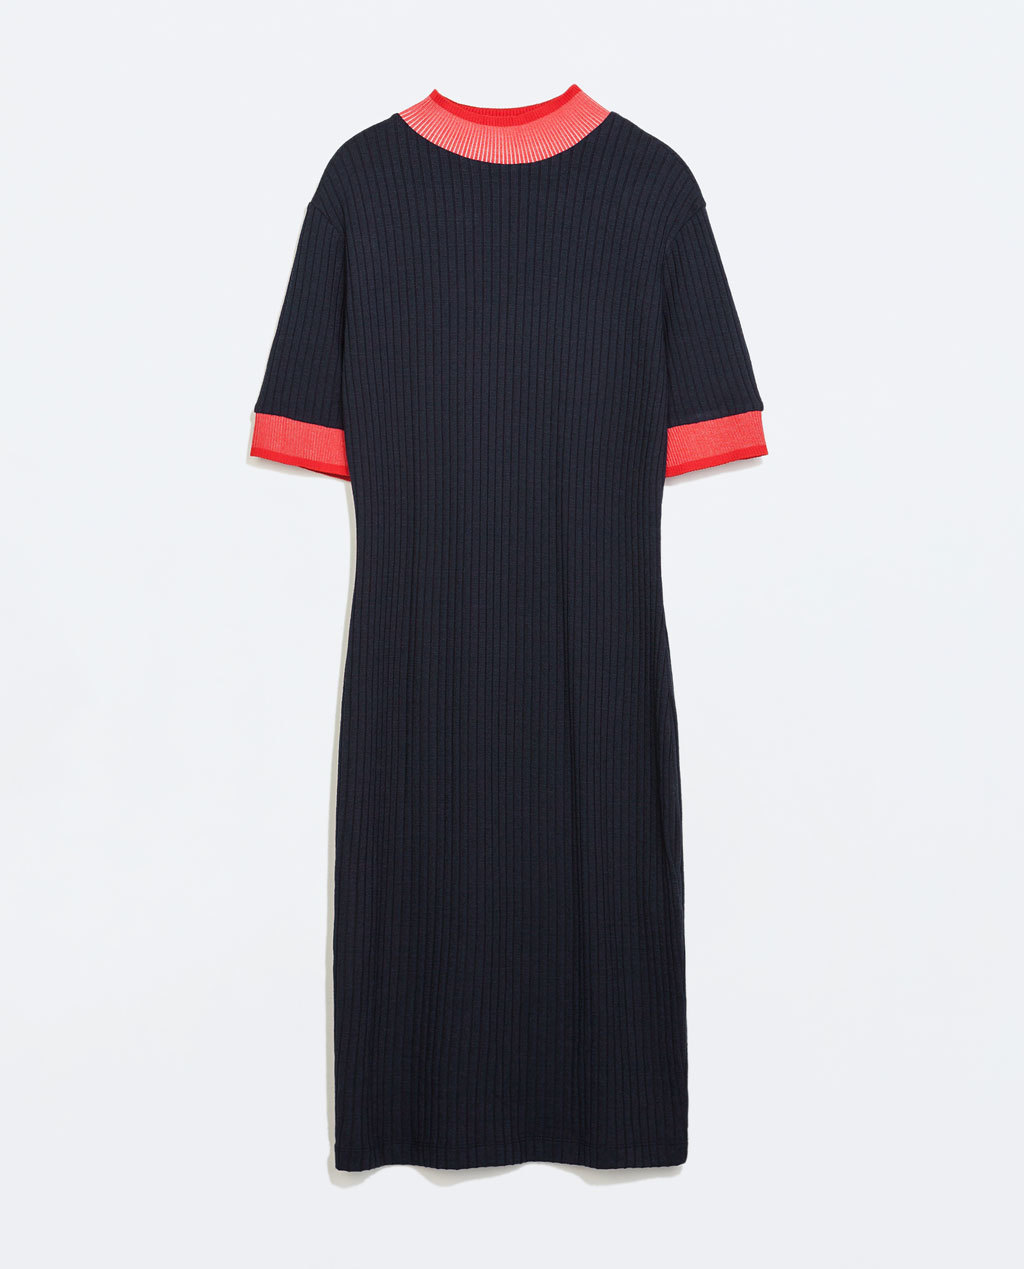 Ribbed Dress - style: shift; length: below the knee; fit: tight; pattern: plain; predominant colour: navy; secondary colour: bright orange; occasions: casual, creative work; neckline: crew; sleeve length: half sleeve; sleeve style: standard; texture group: knits/crochet; pattern type: knitted - fine stitch; season: a/w 2014